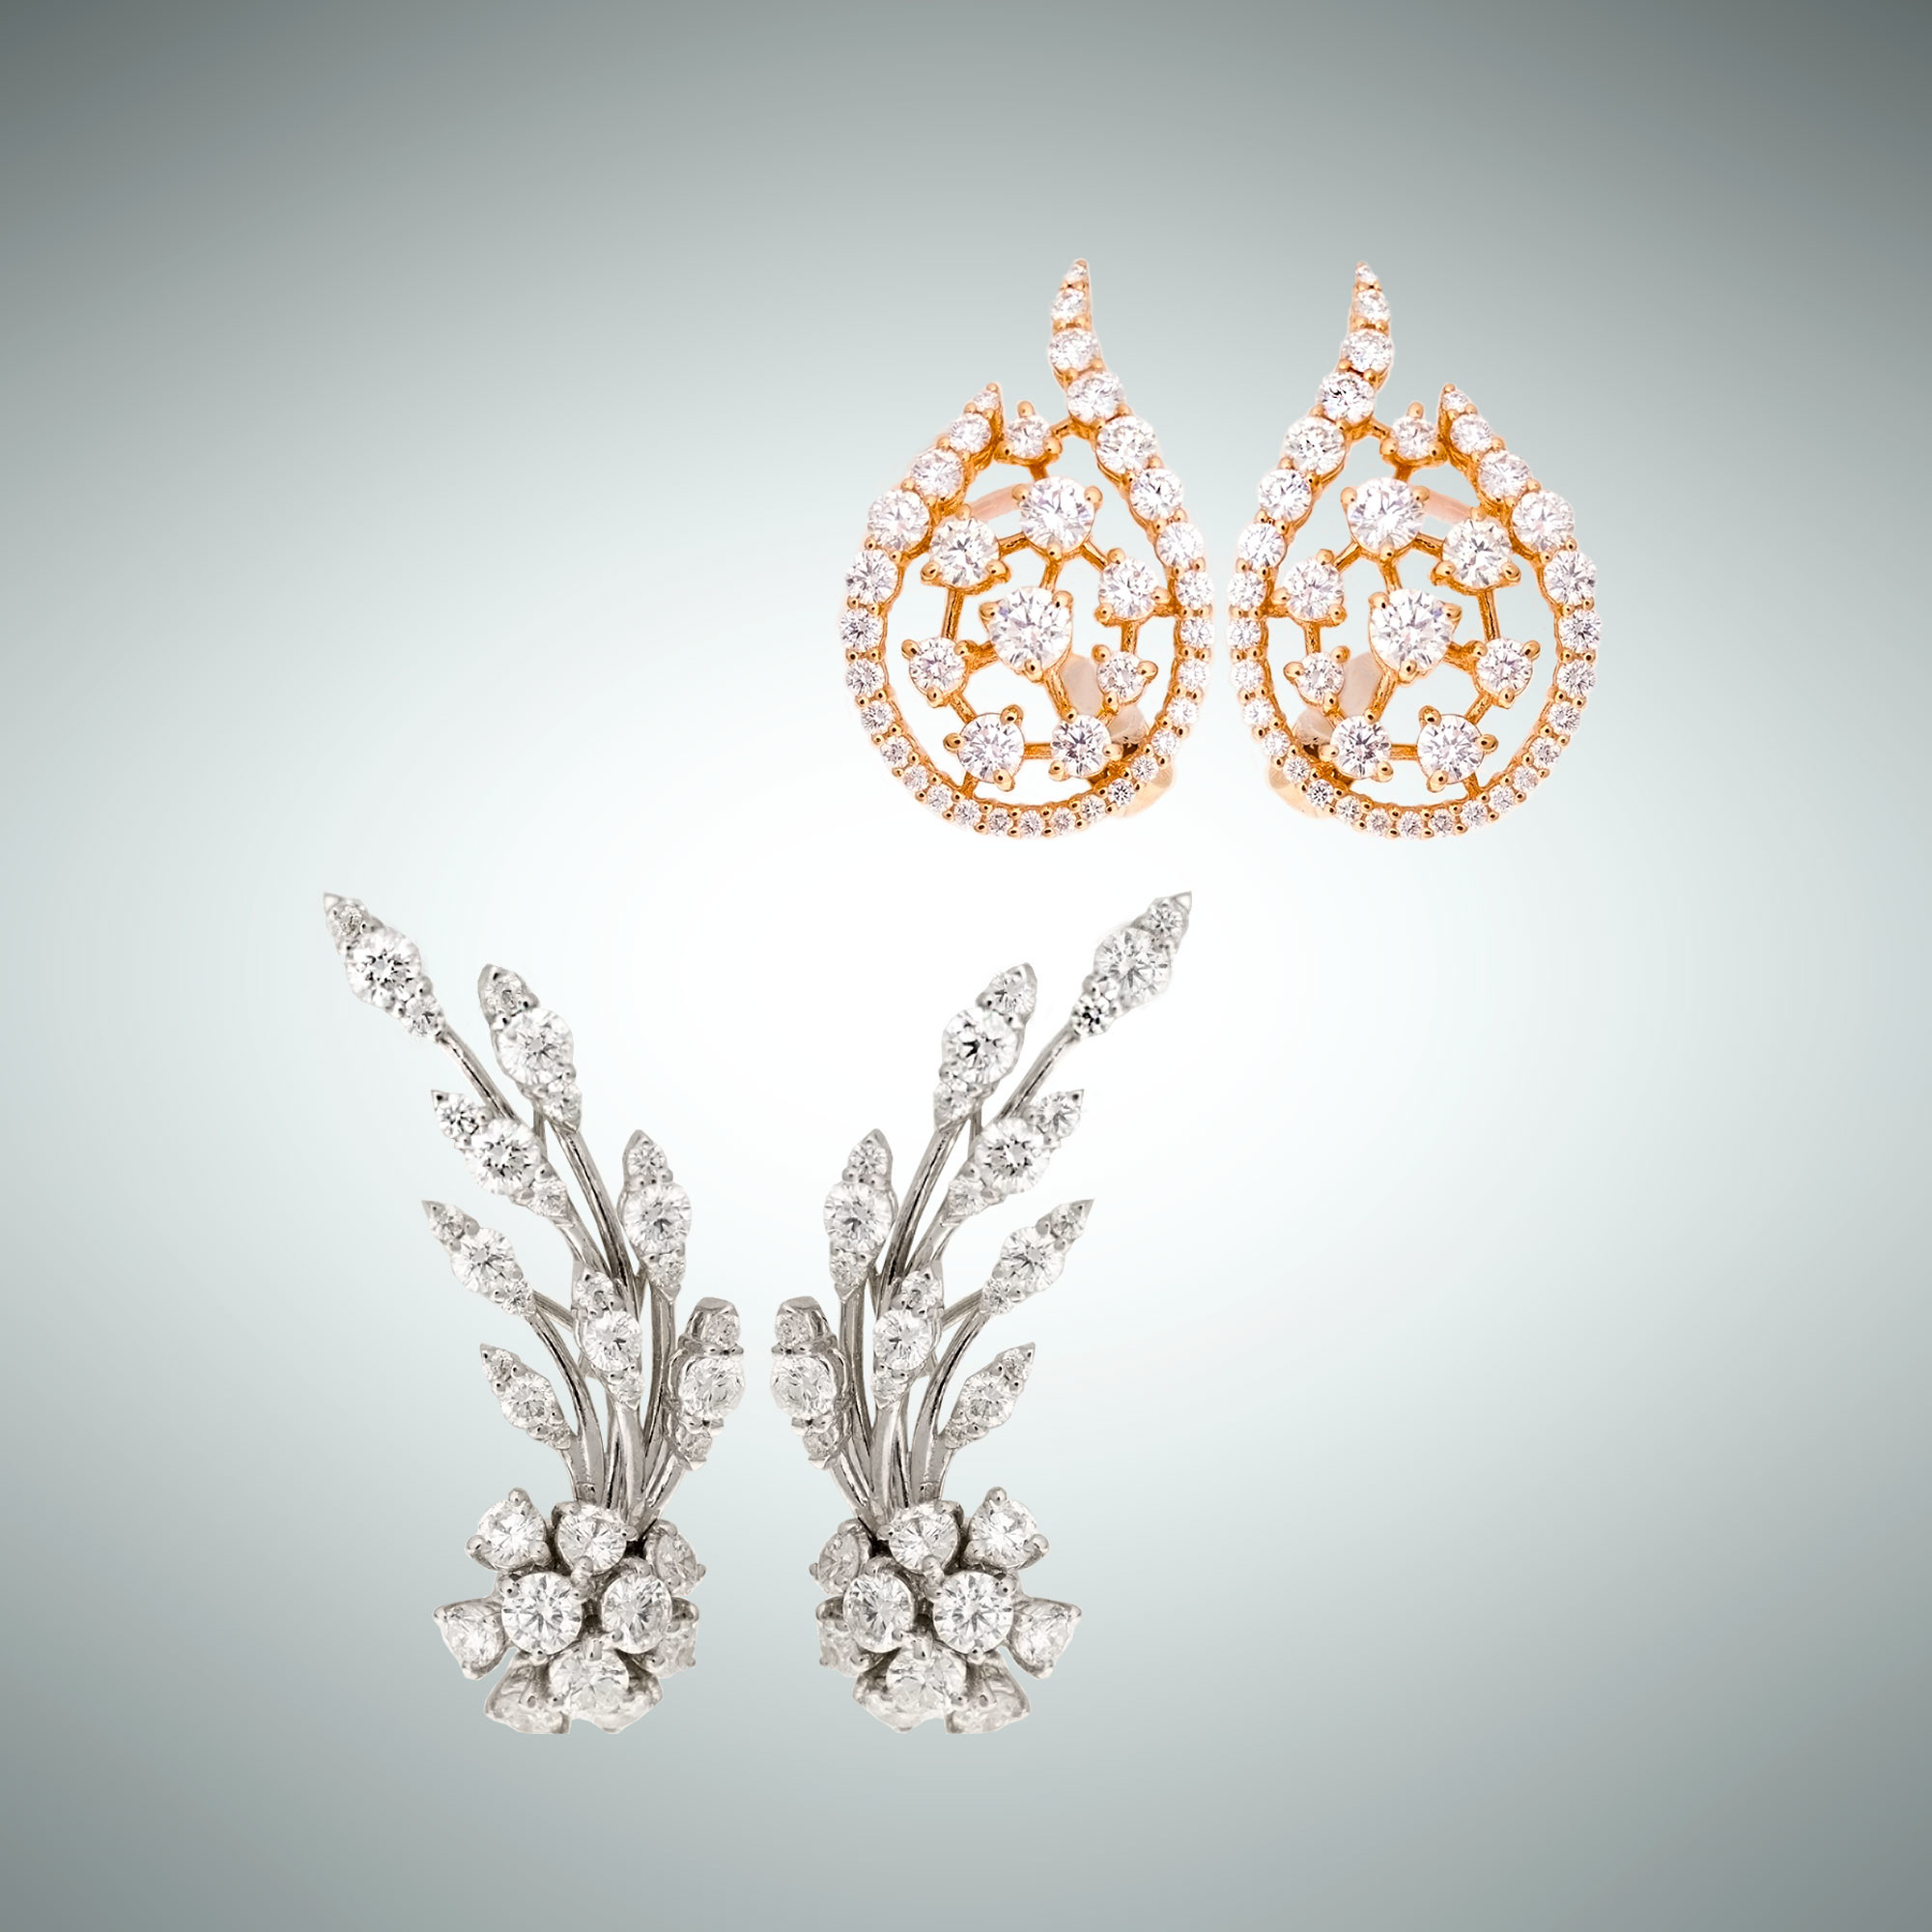 Flamme earrings